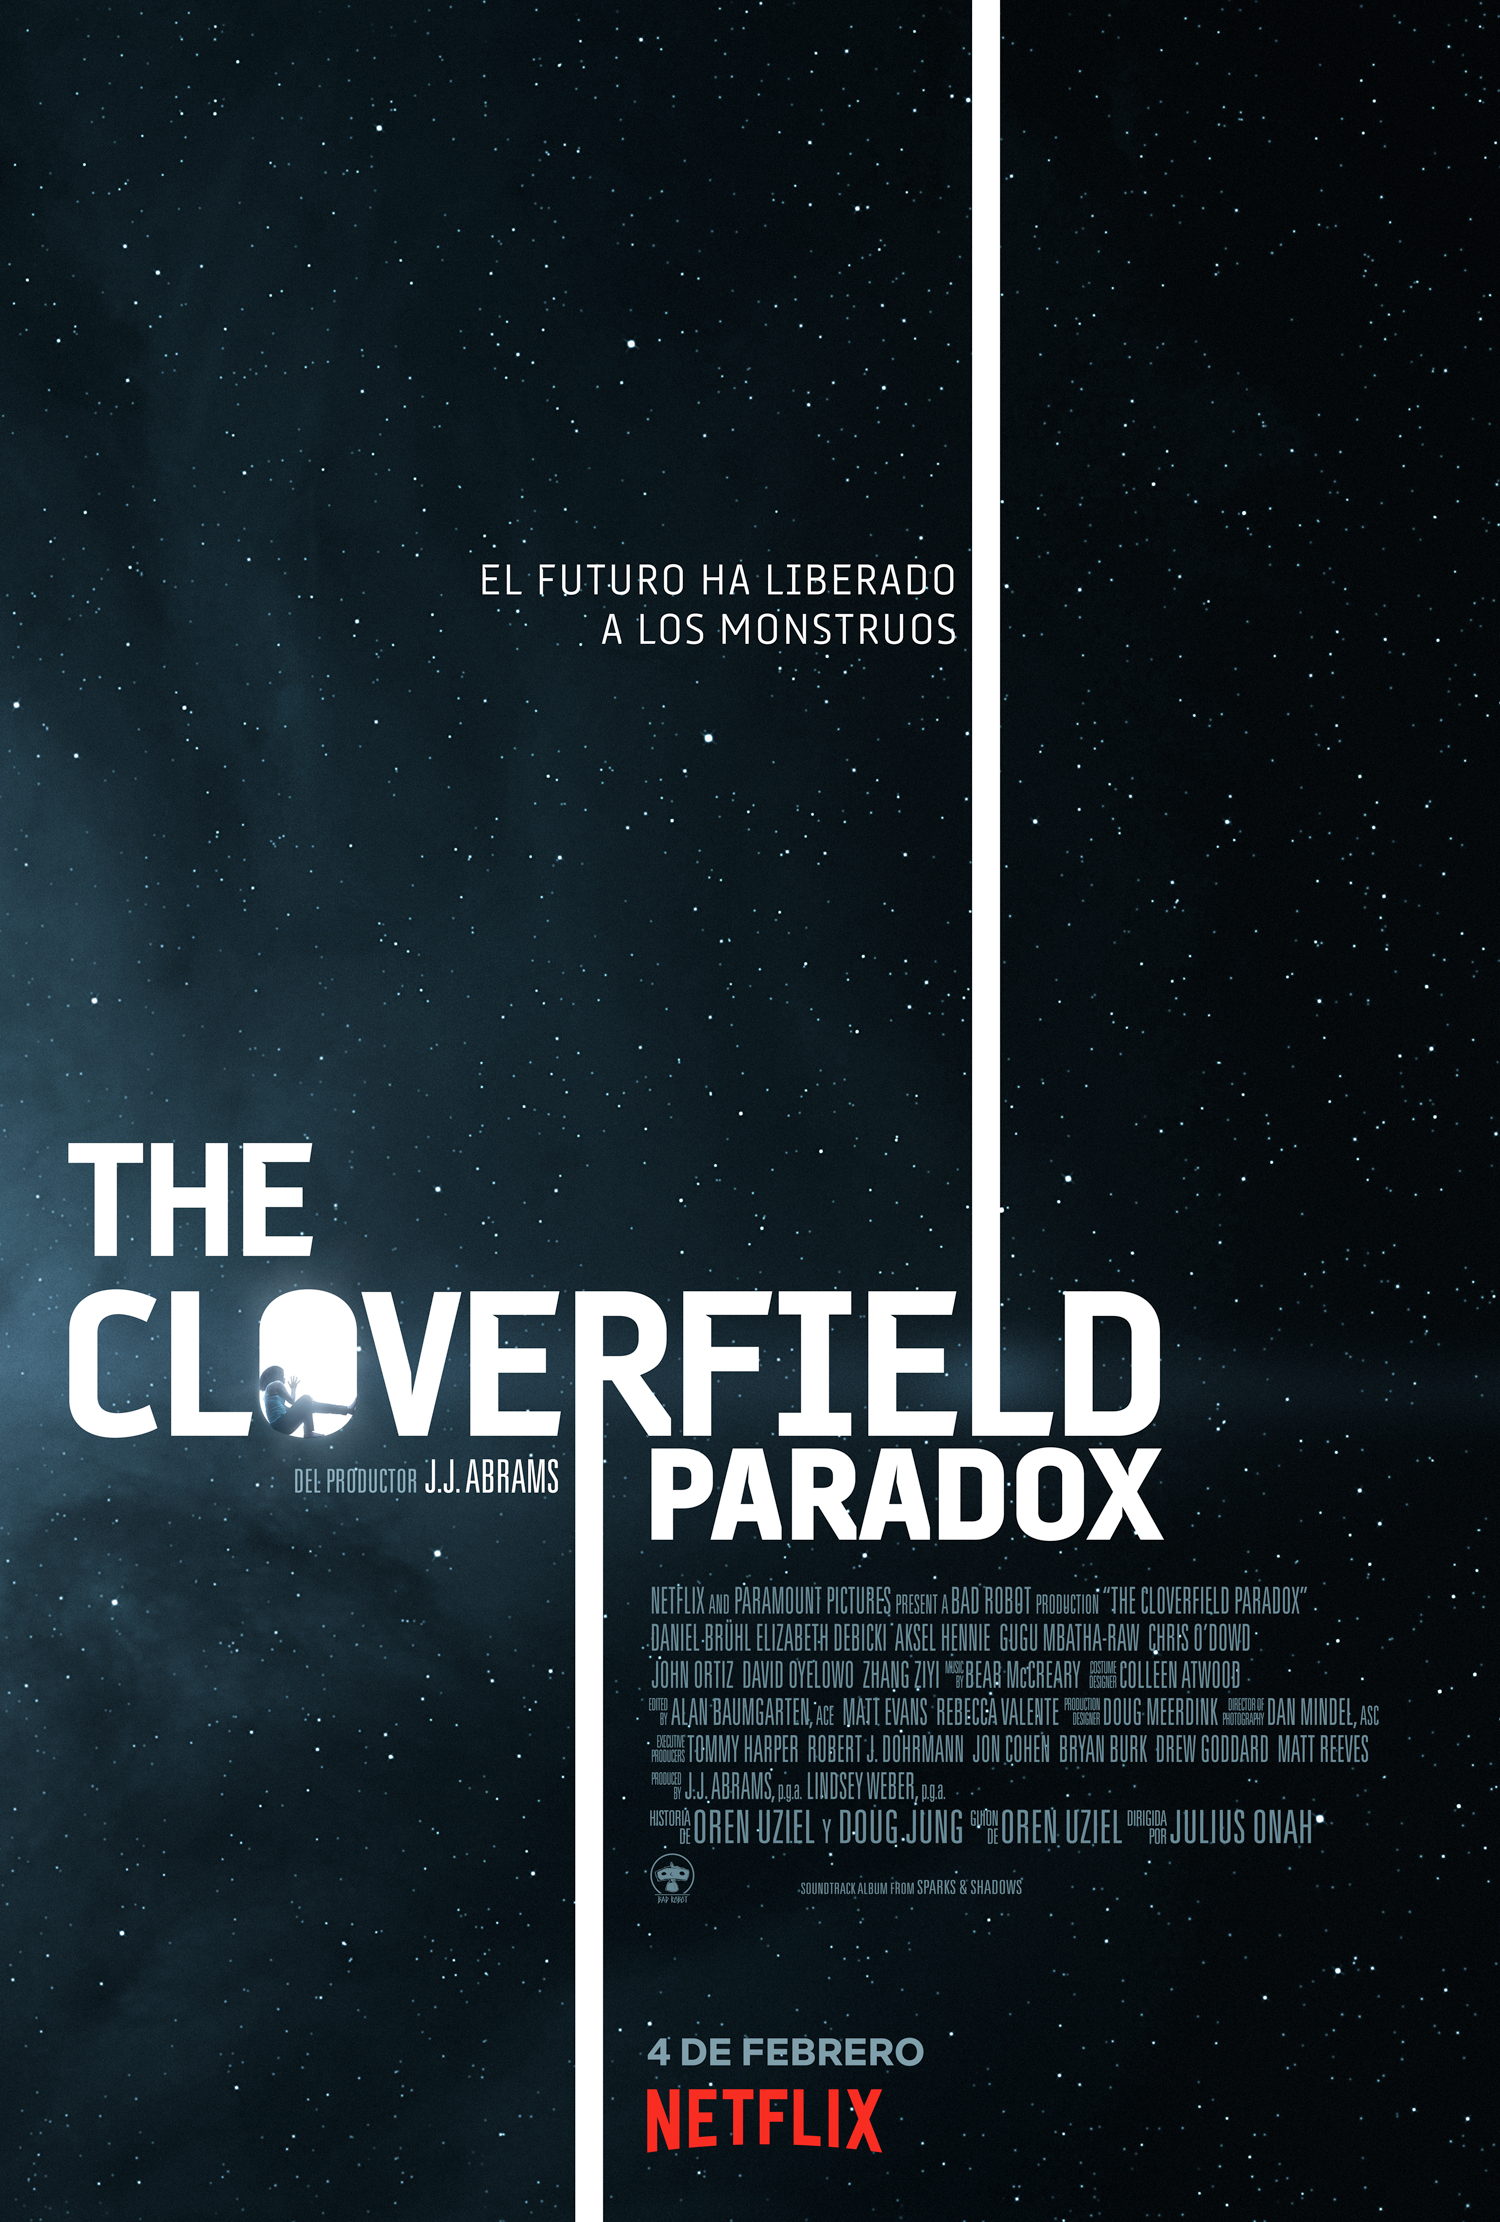 Click to enlarge image The Cloverfield Paradox 00.jpg